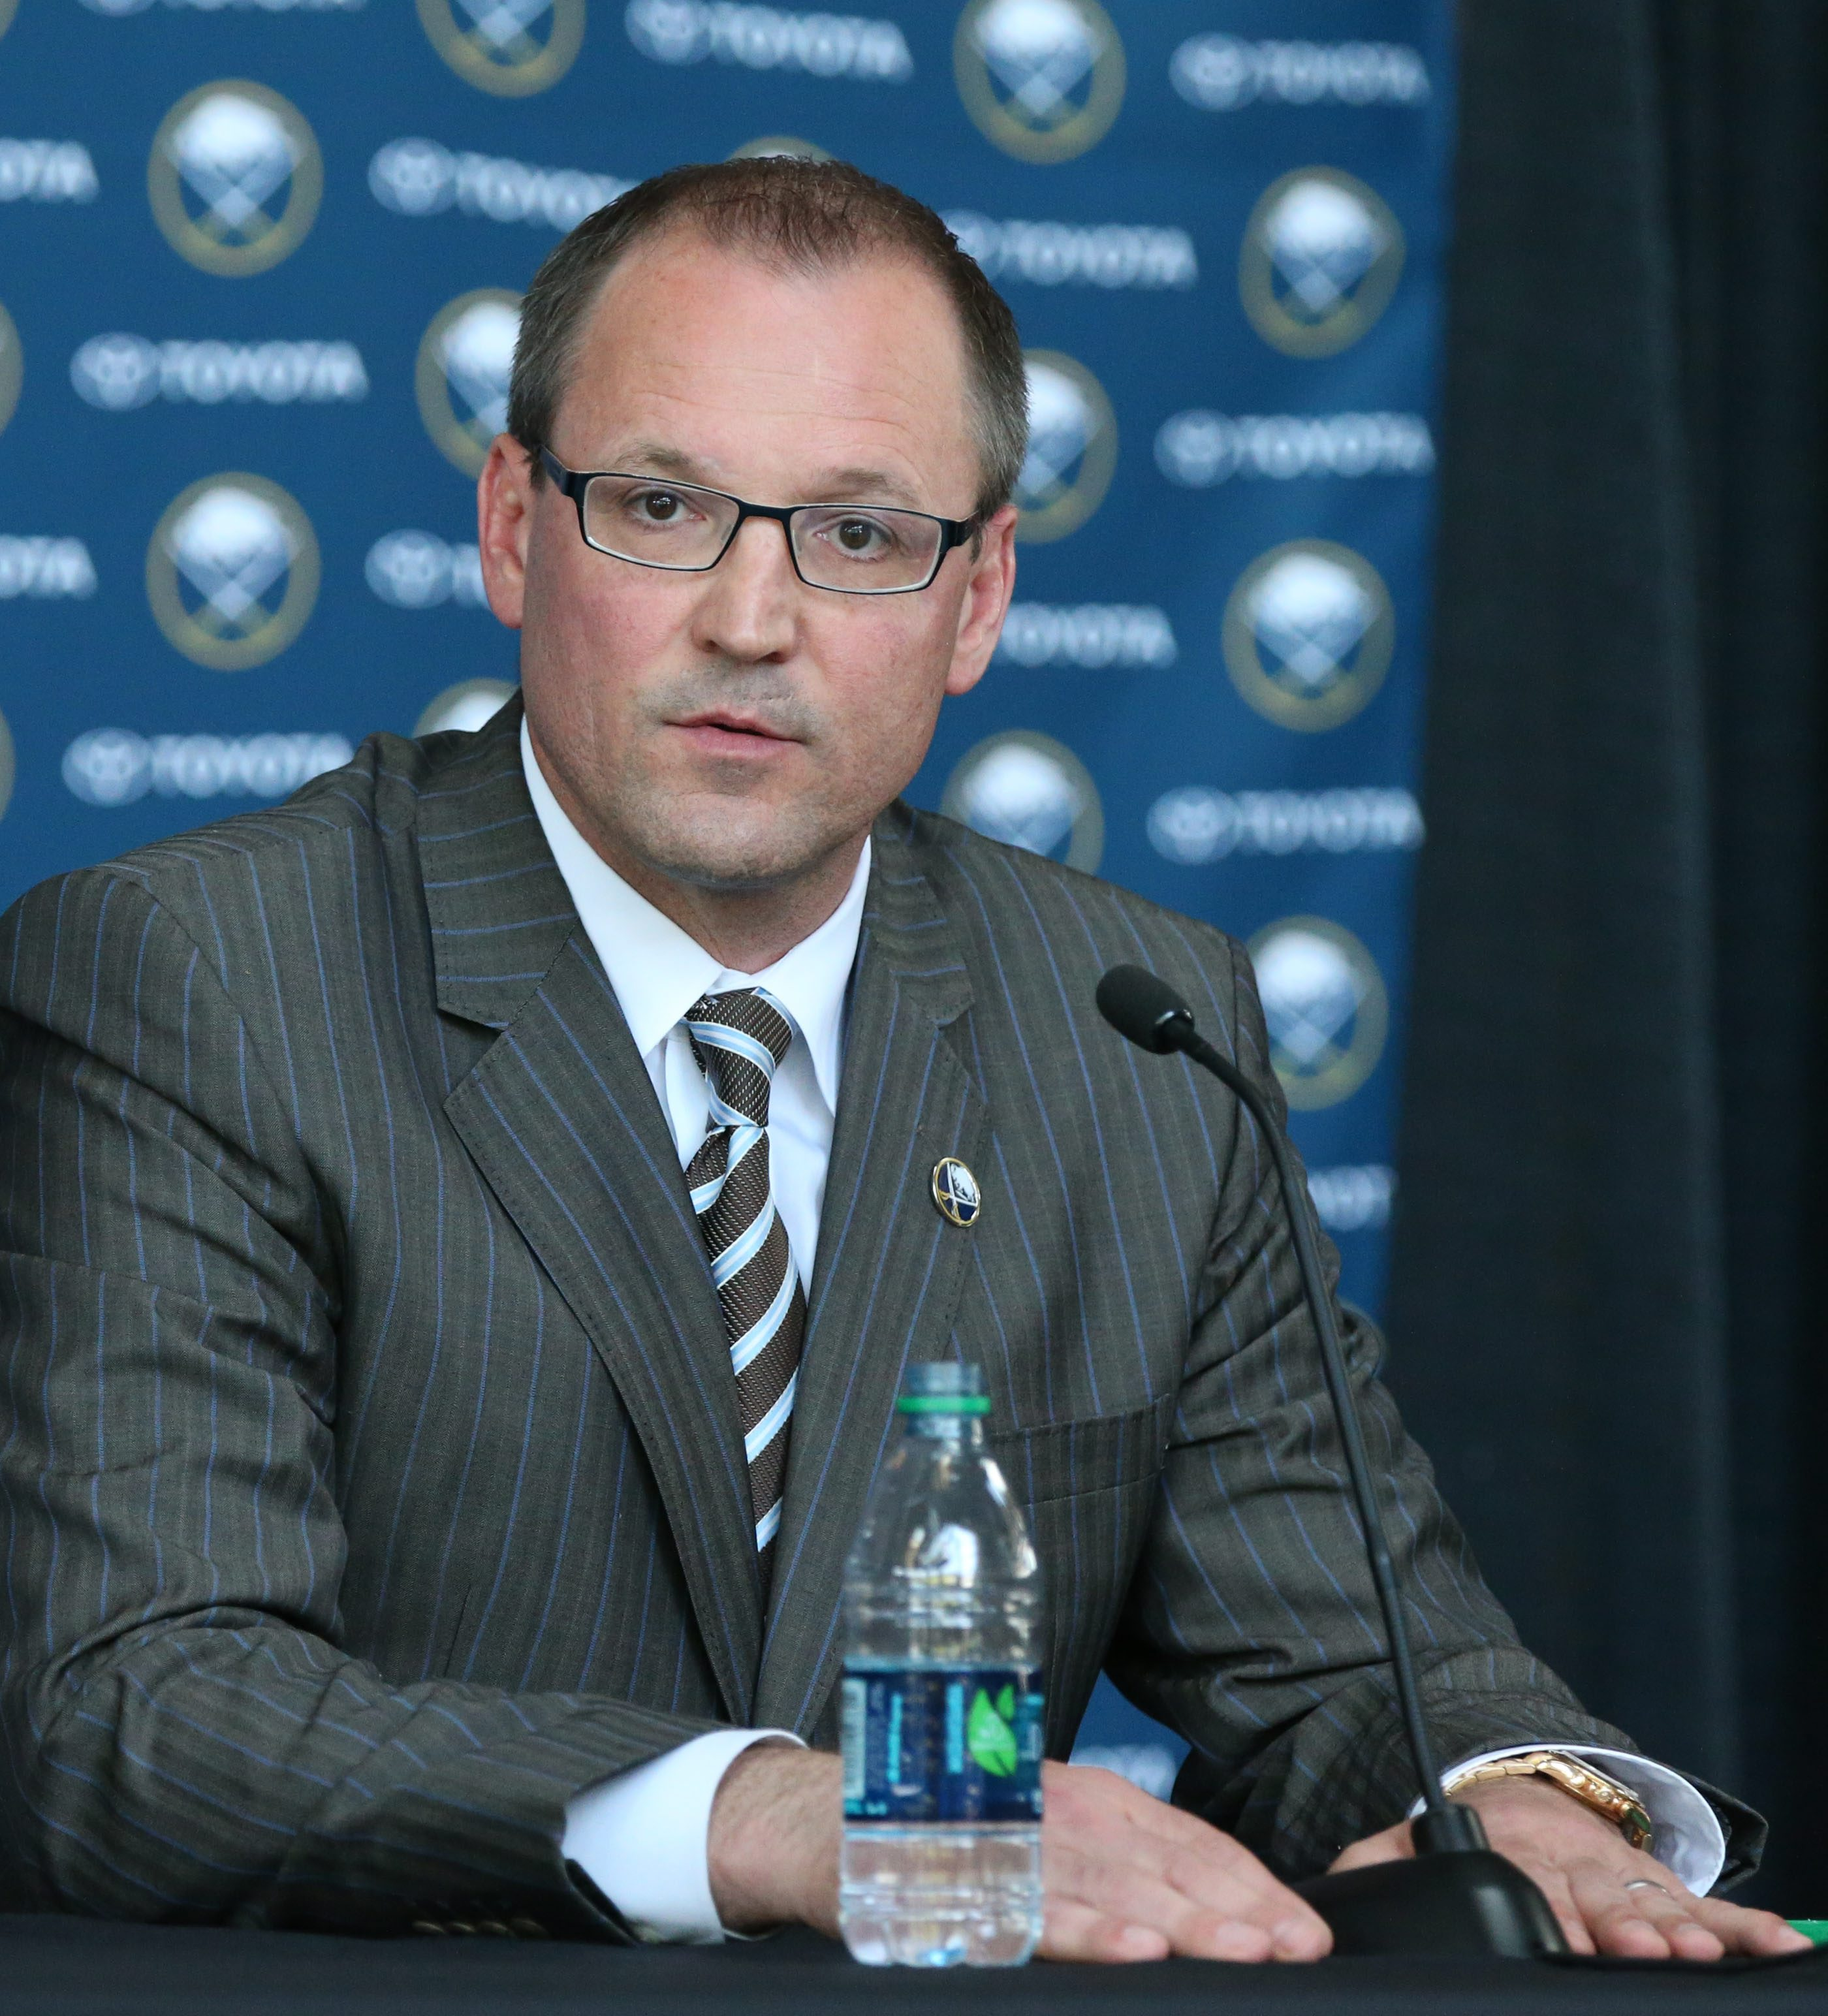 Dan Bylsma joked that he watched too many games on television last season.